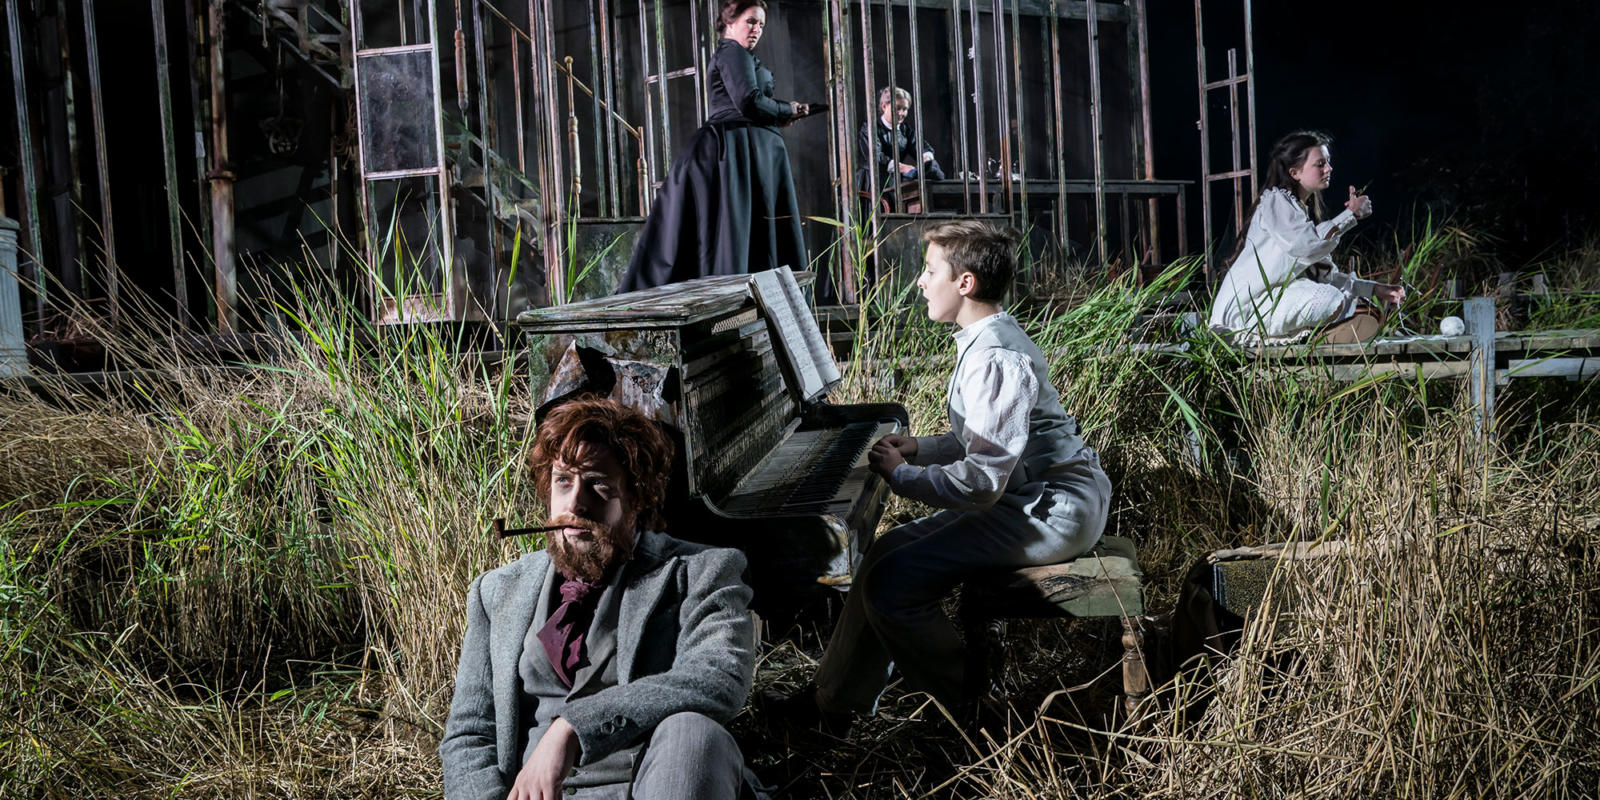 ENO 2017/18 The Turn of the Screw: Elgan Llyr Thomas as Peter Quint and Anita Watson as The Governess, with Daniel Alexander Sidhom and Elen Willmer as Miles and Flora. Photo Johan Persson.